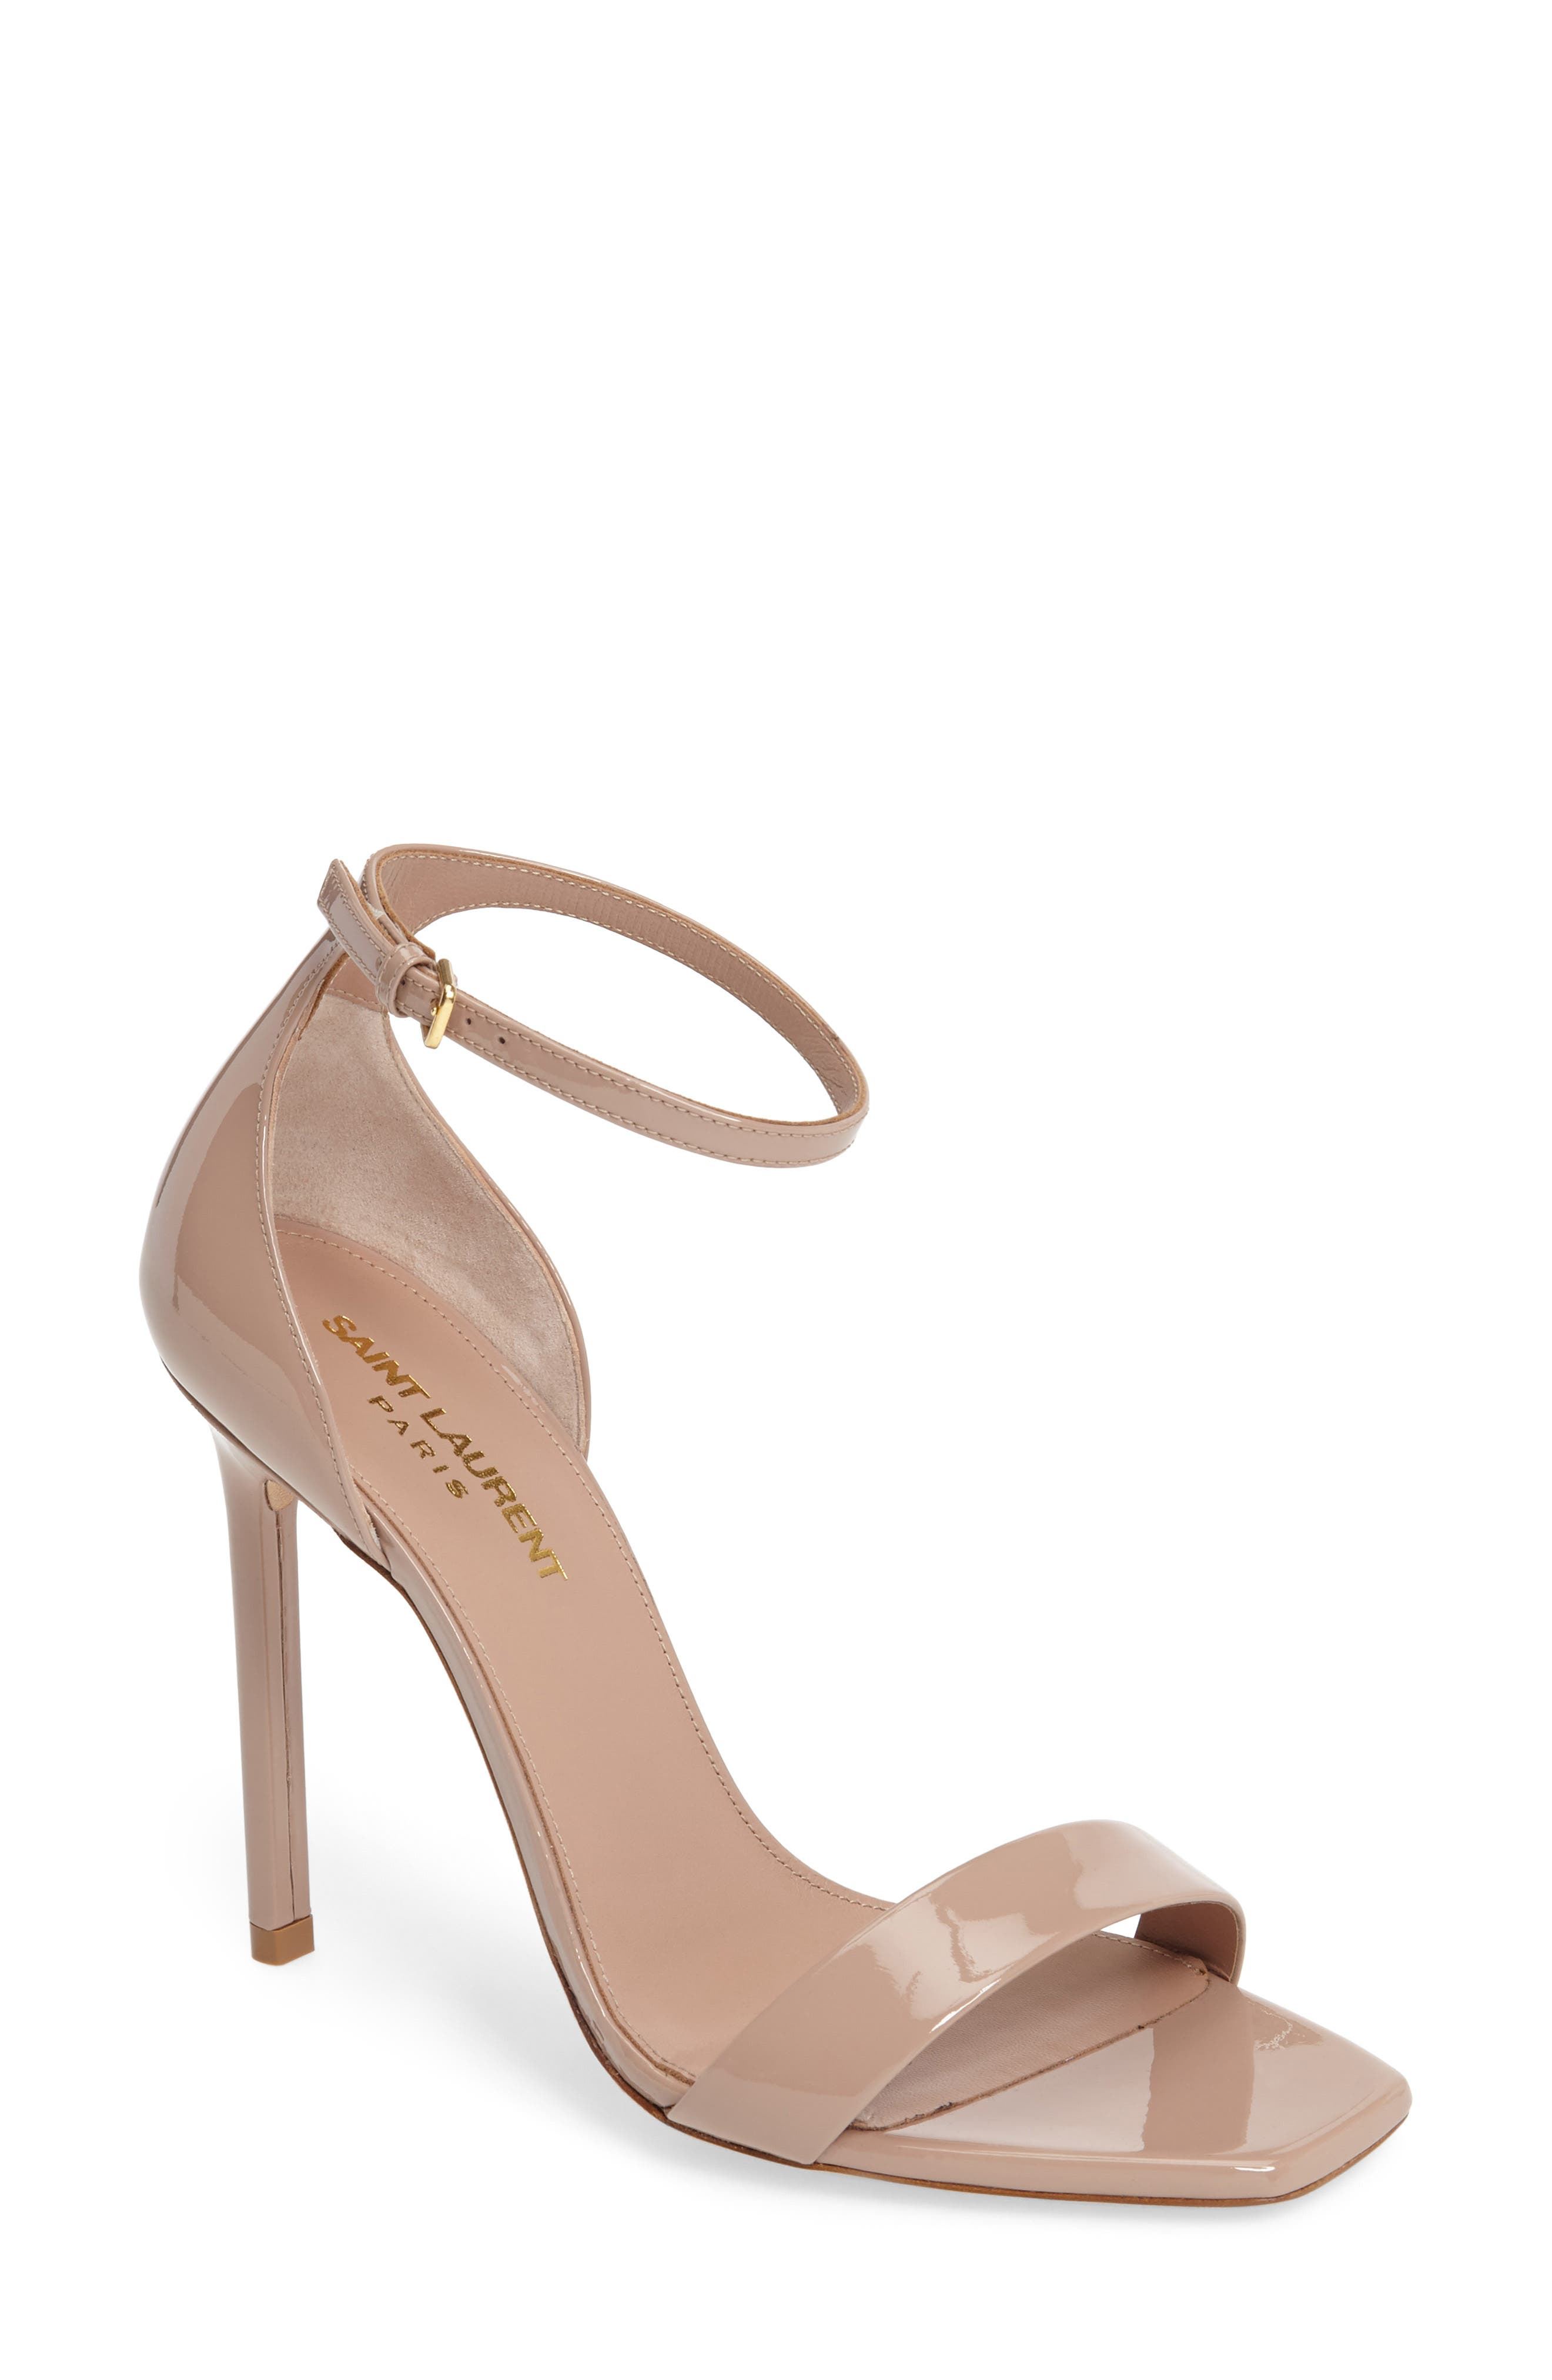 Amber Ankle Strap Sandal,                             Main thumbnail 1, color,                             NUDE PATENT